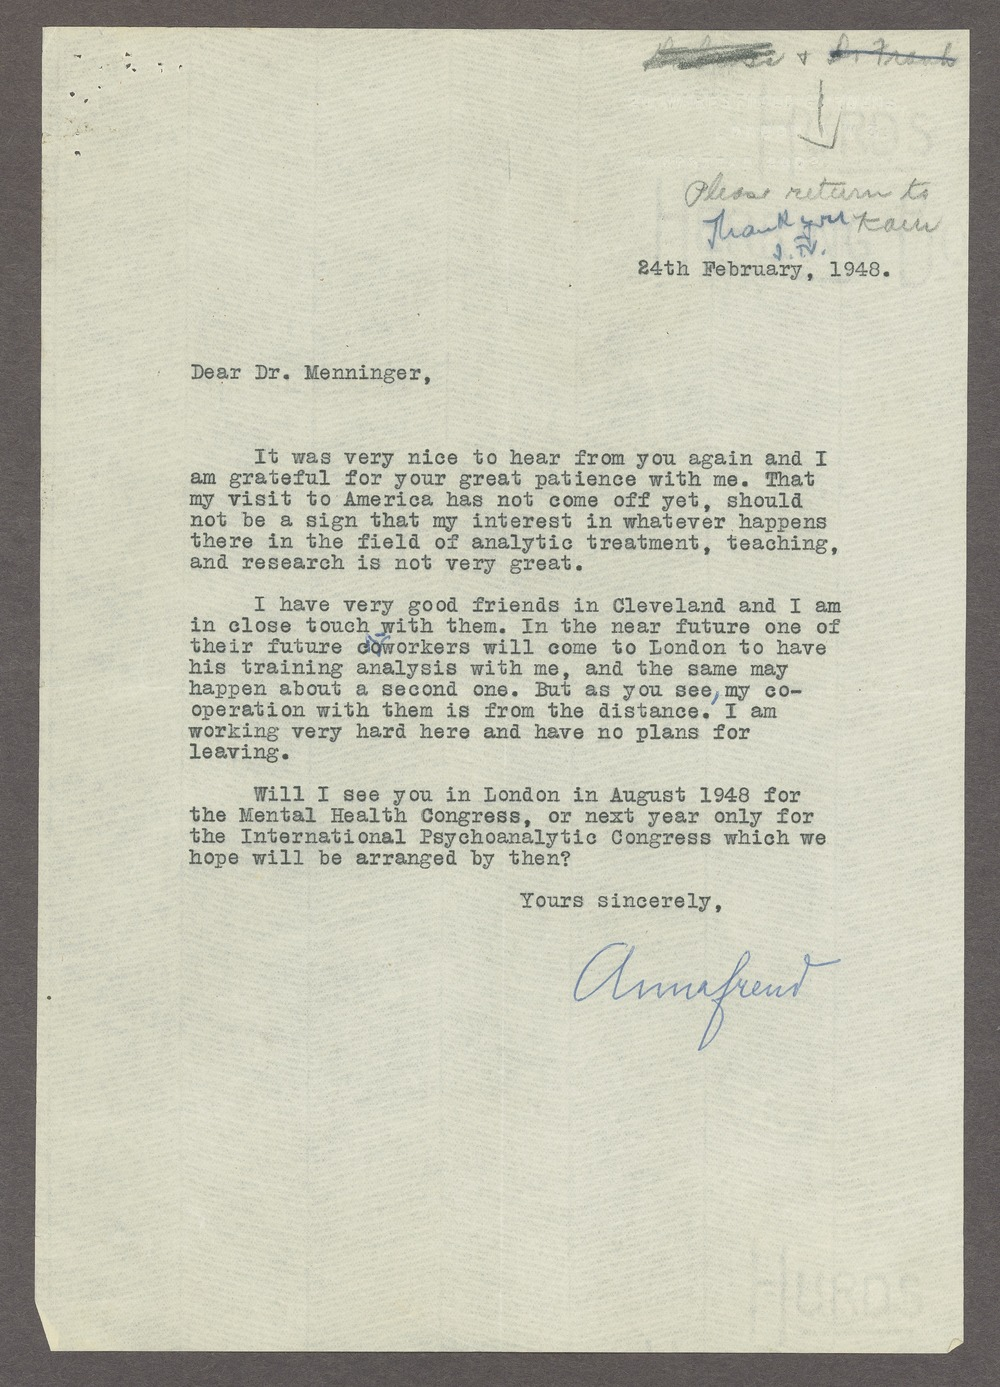 Anna Freud correspondence - Freud, Anna  February 24, 1948 (Box 1, folder 2)